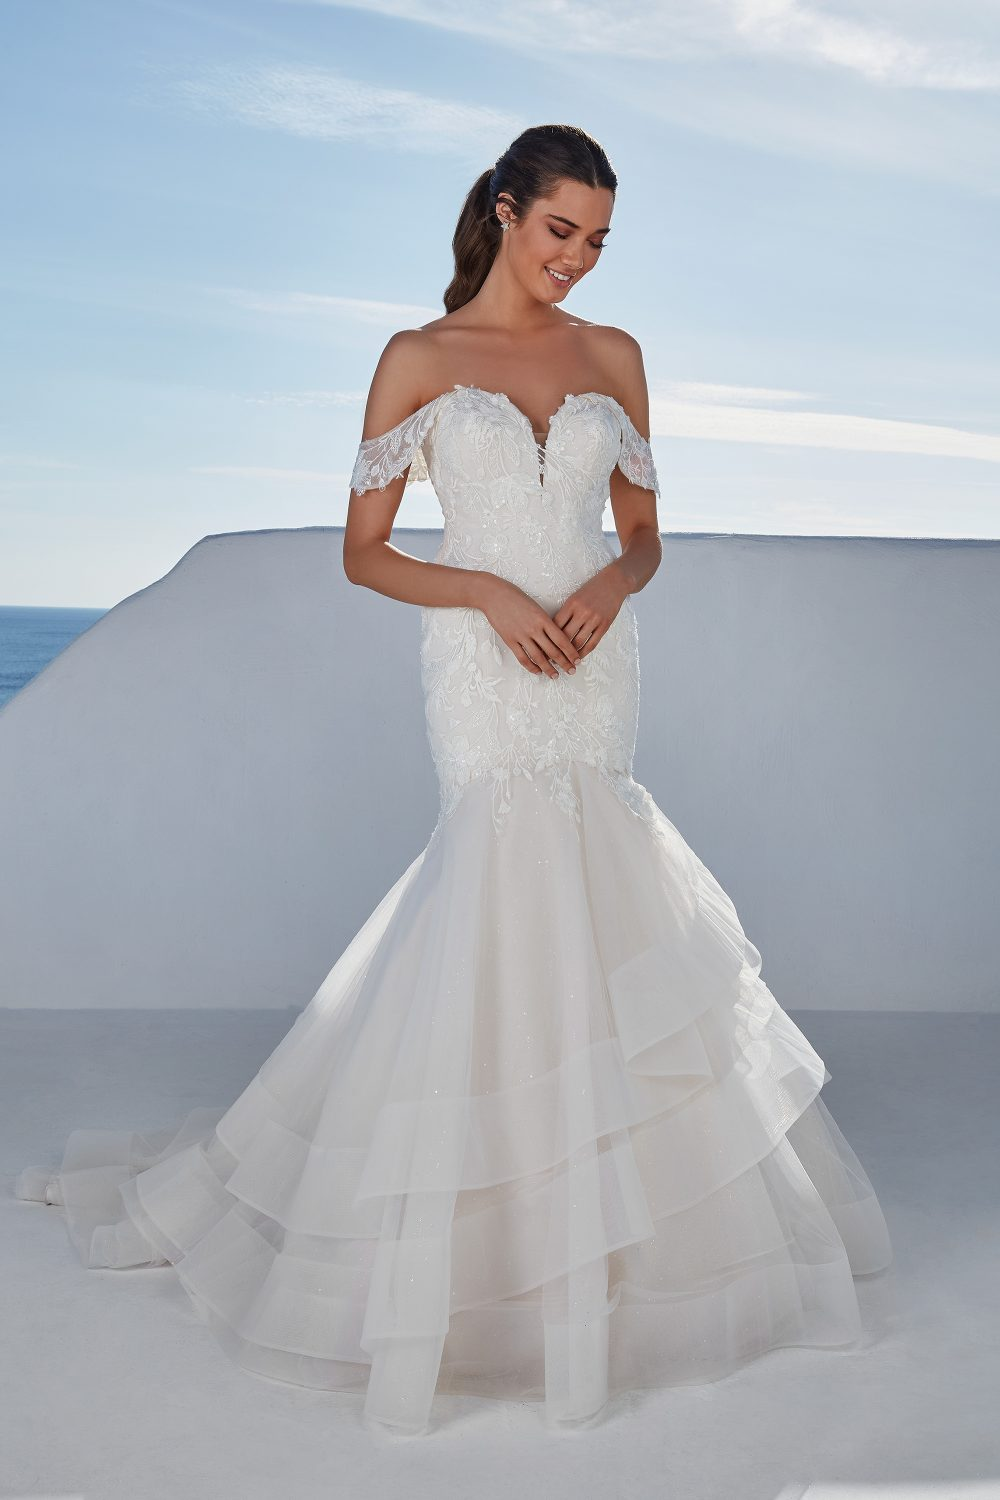 Breslin from Justin Alexander available at Emily Bridalwear in Sheffield